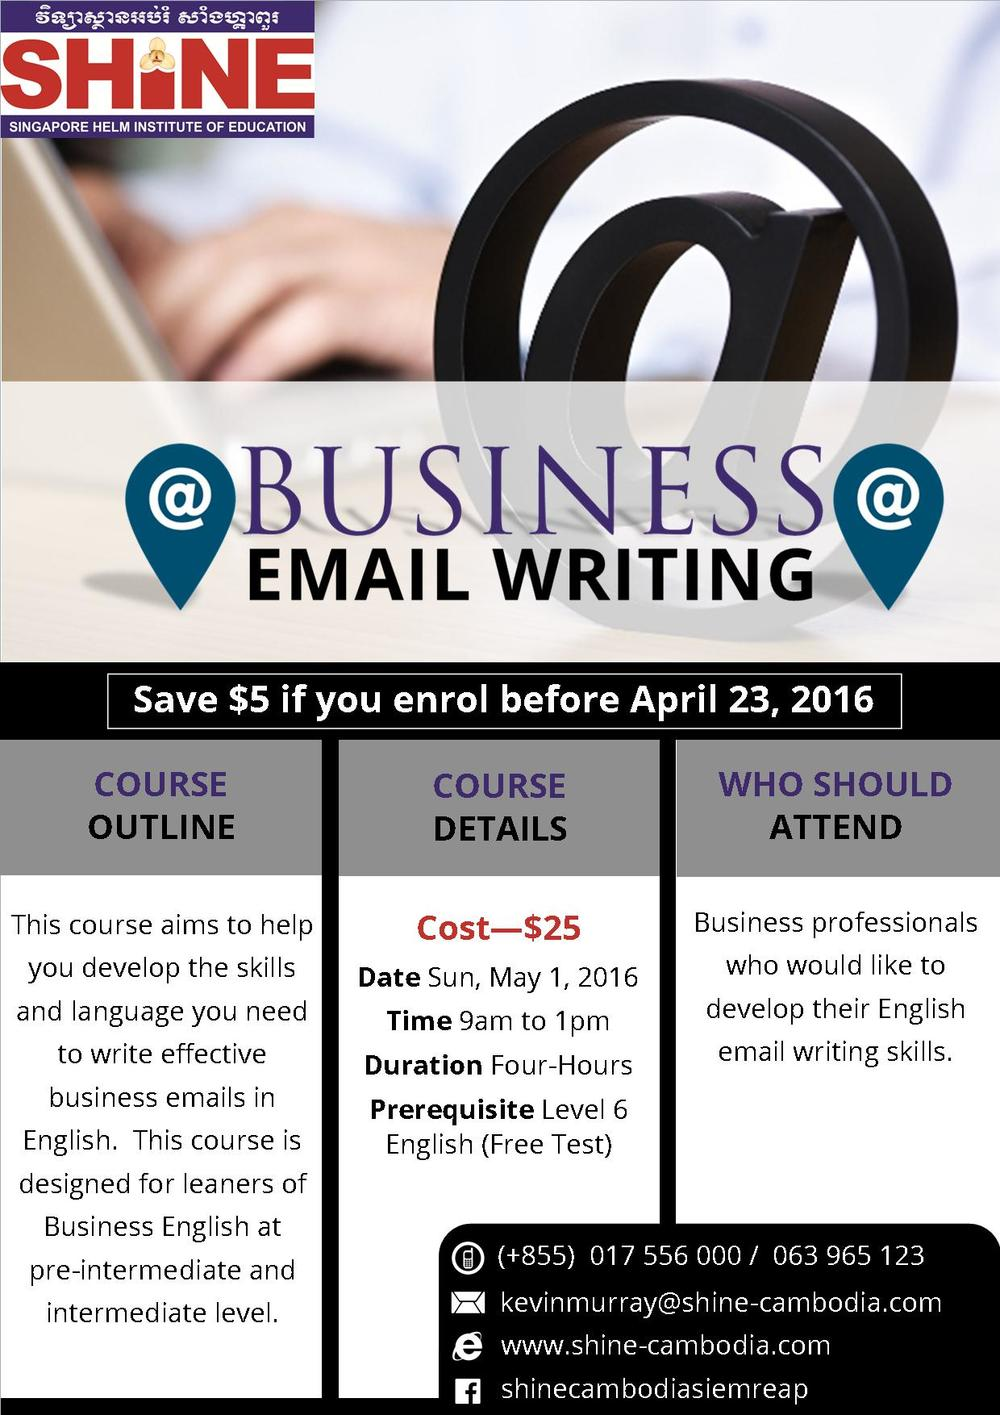 SHINE FLYER-Business Email Writing.jpg